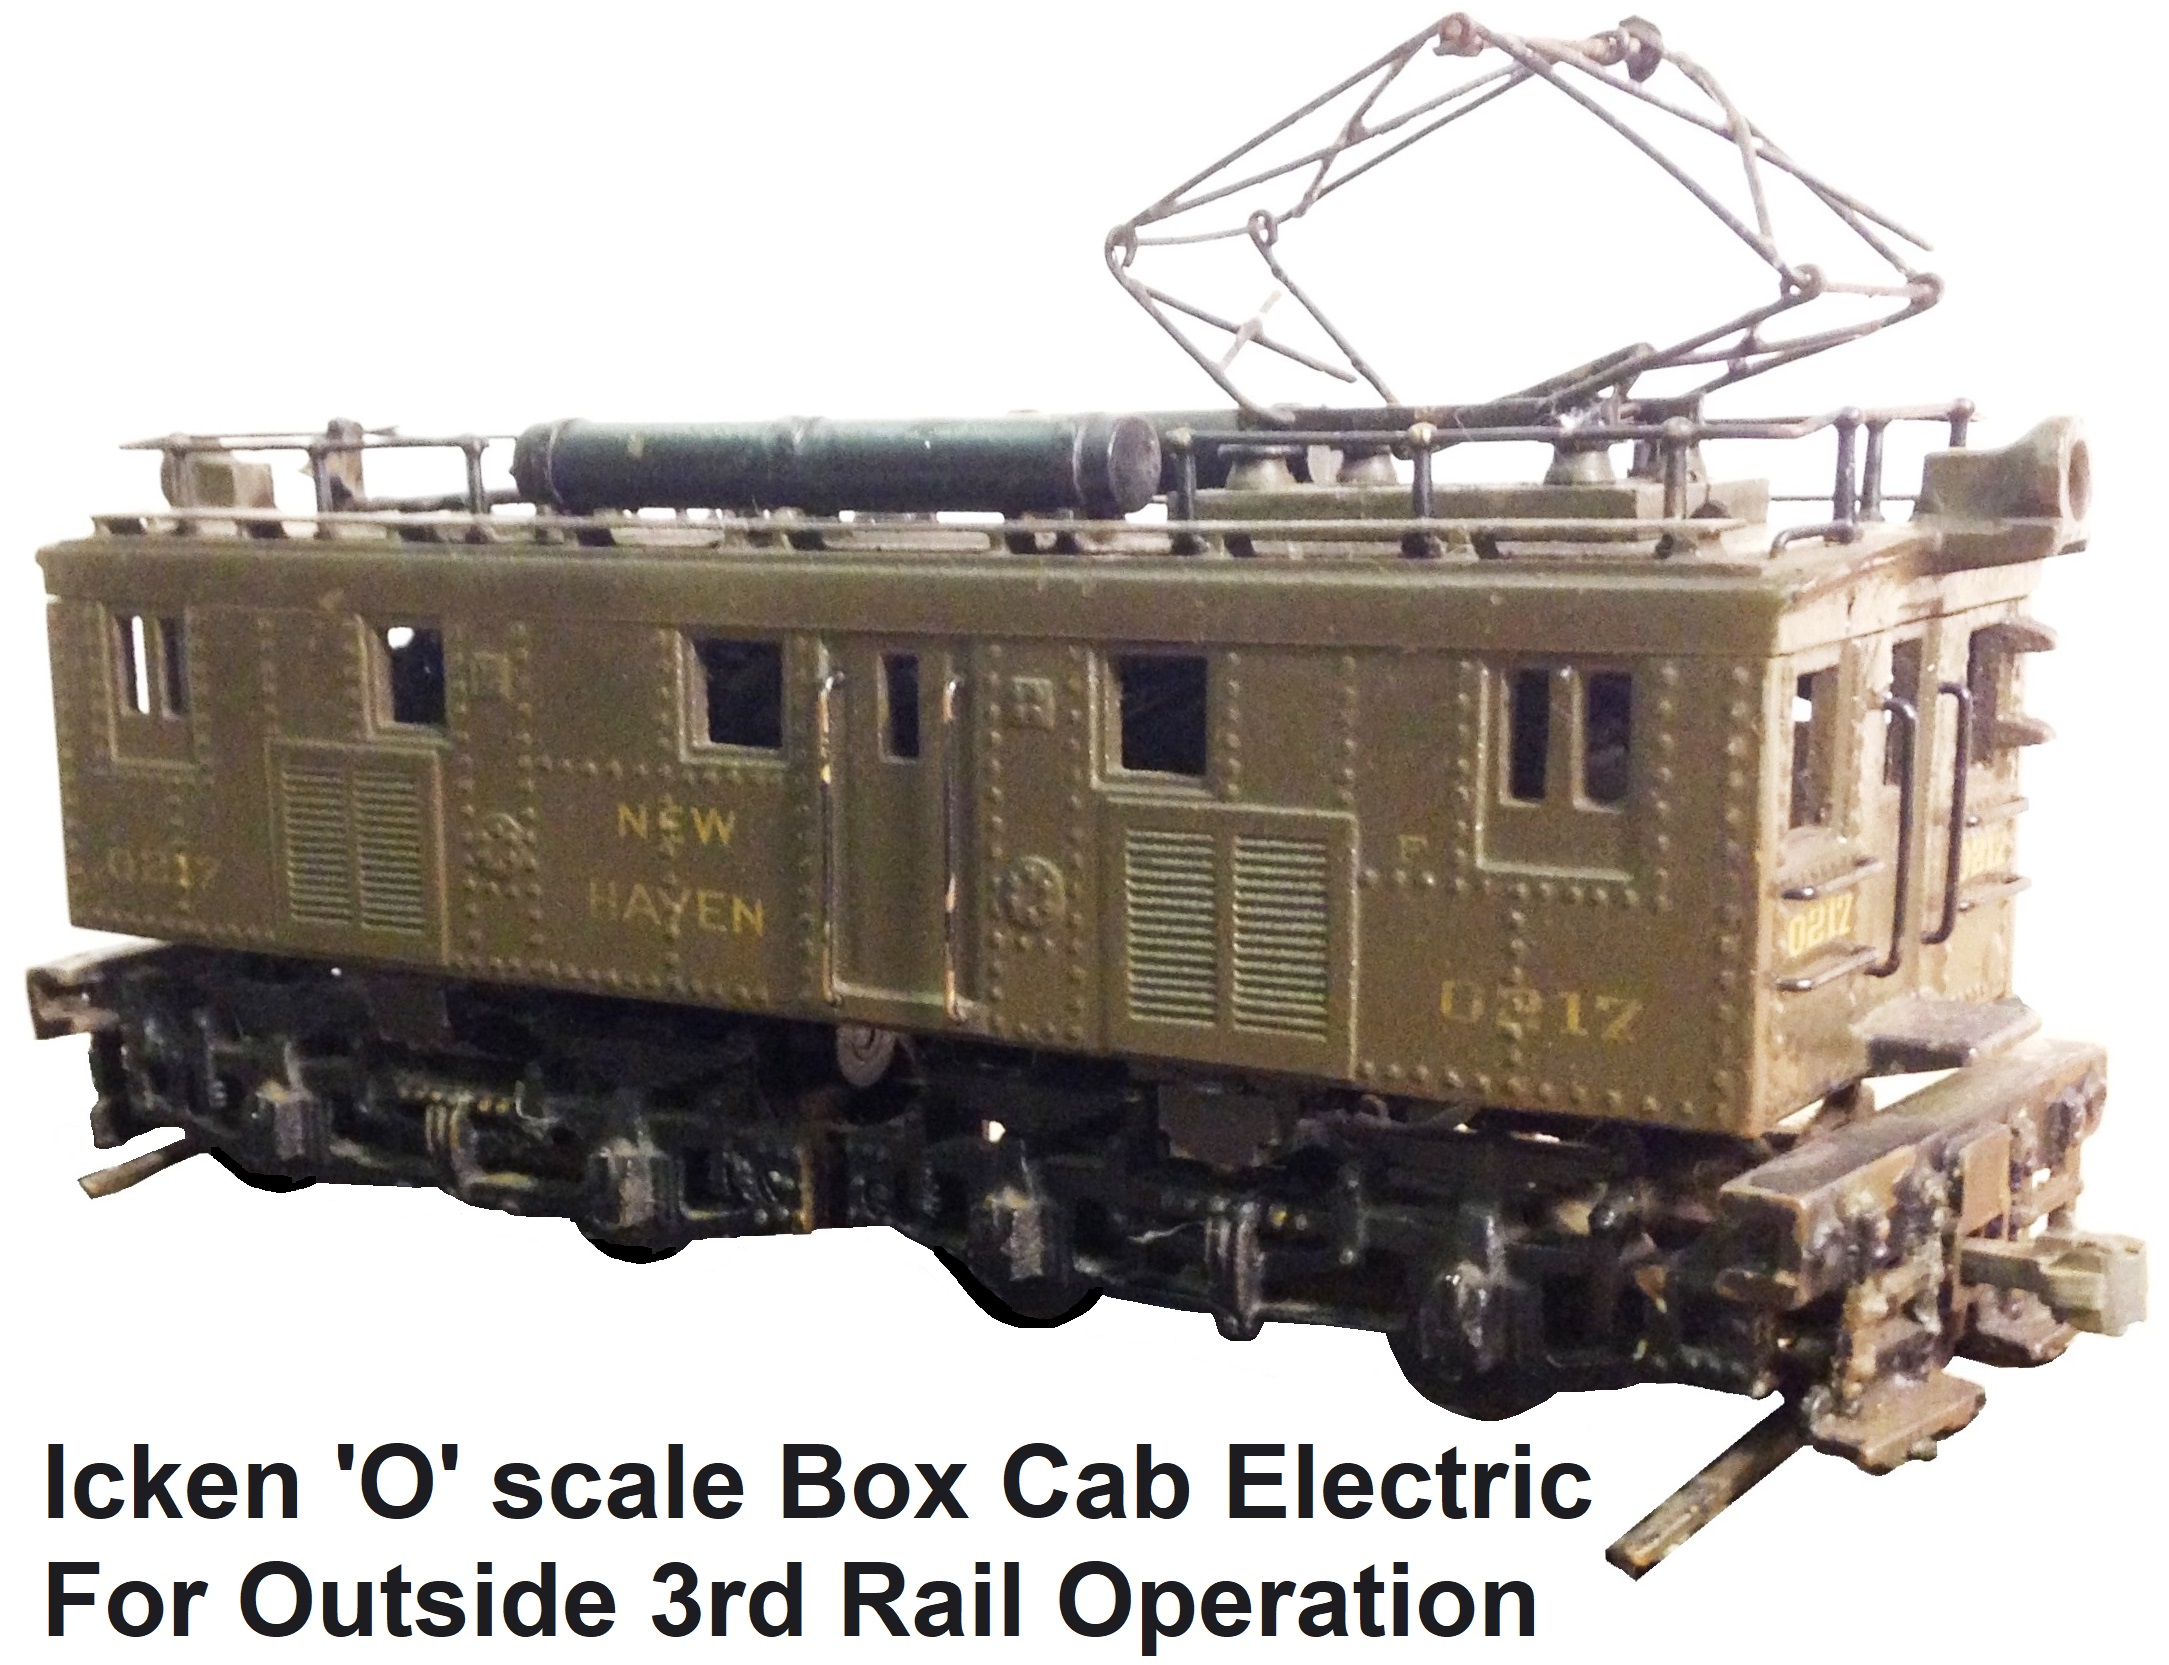 Icken Model Company N.H.N.H. & H.R.R. box cab electric switcher in 'O' scale for outside 3rd rail operation